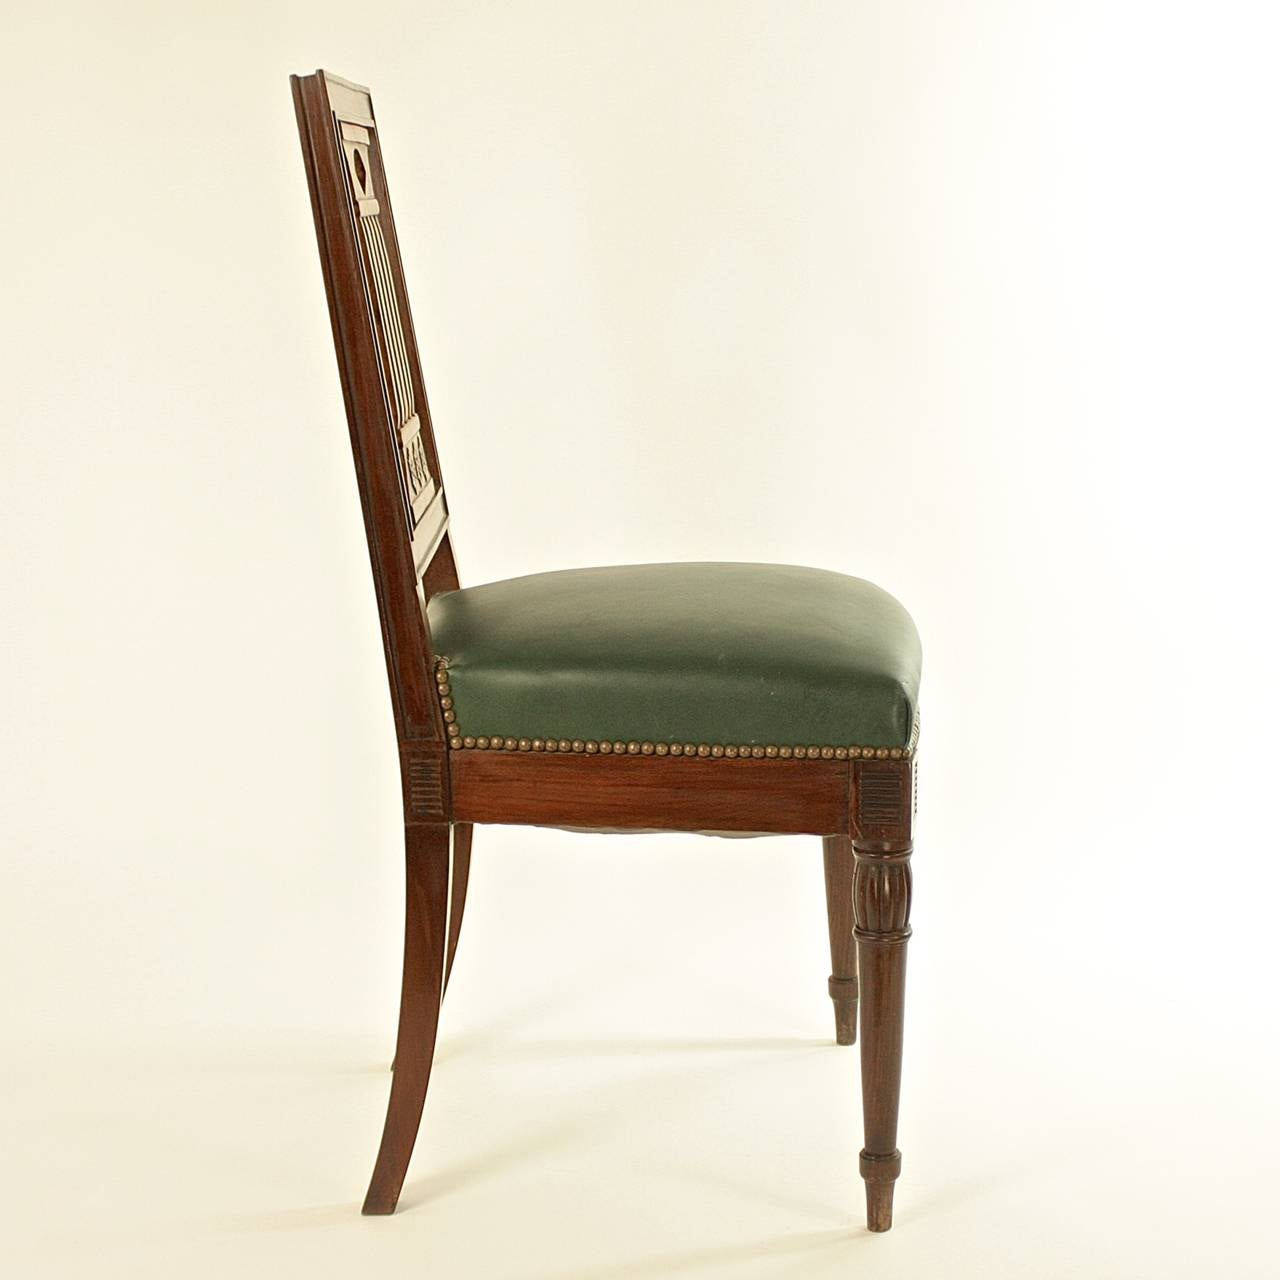 Leather Pair of Early 19th Century Chairs, in the manner of Bellange frere, circa 1810 For Sale